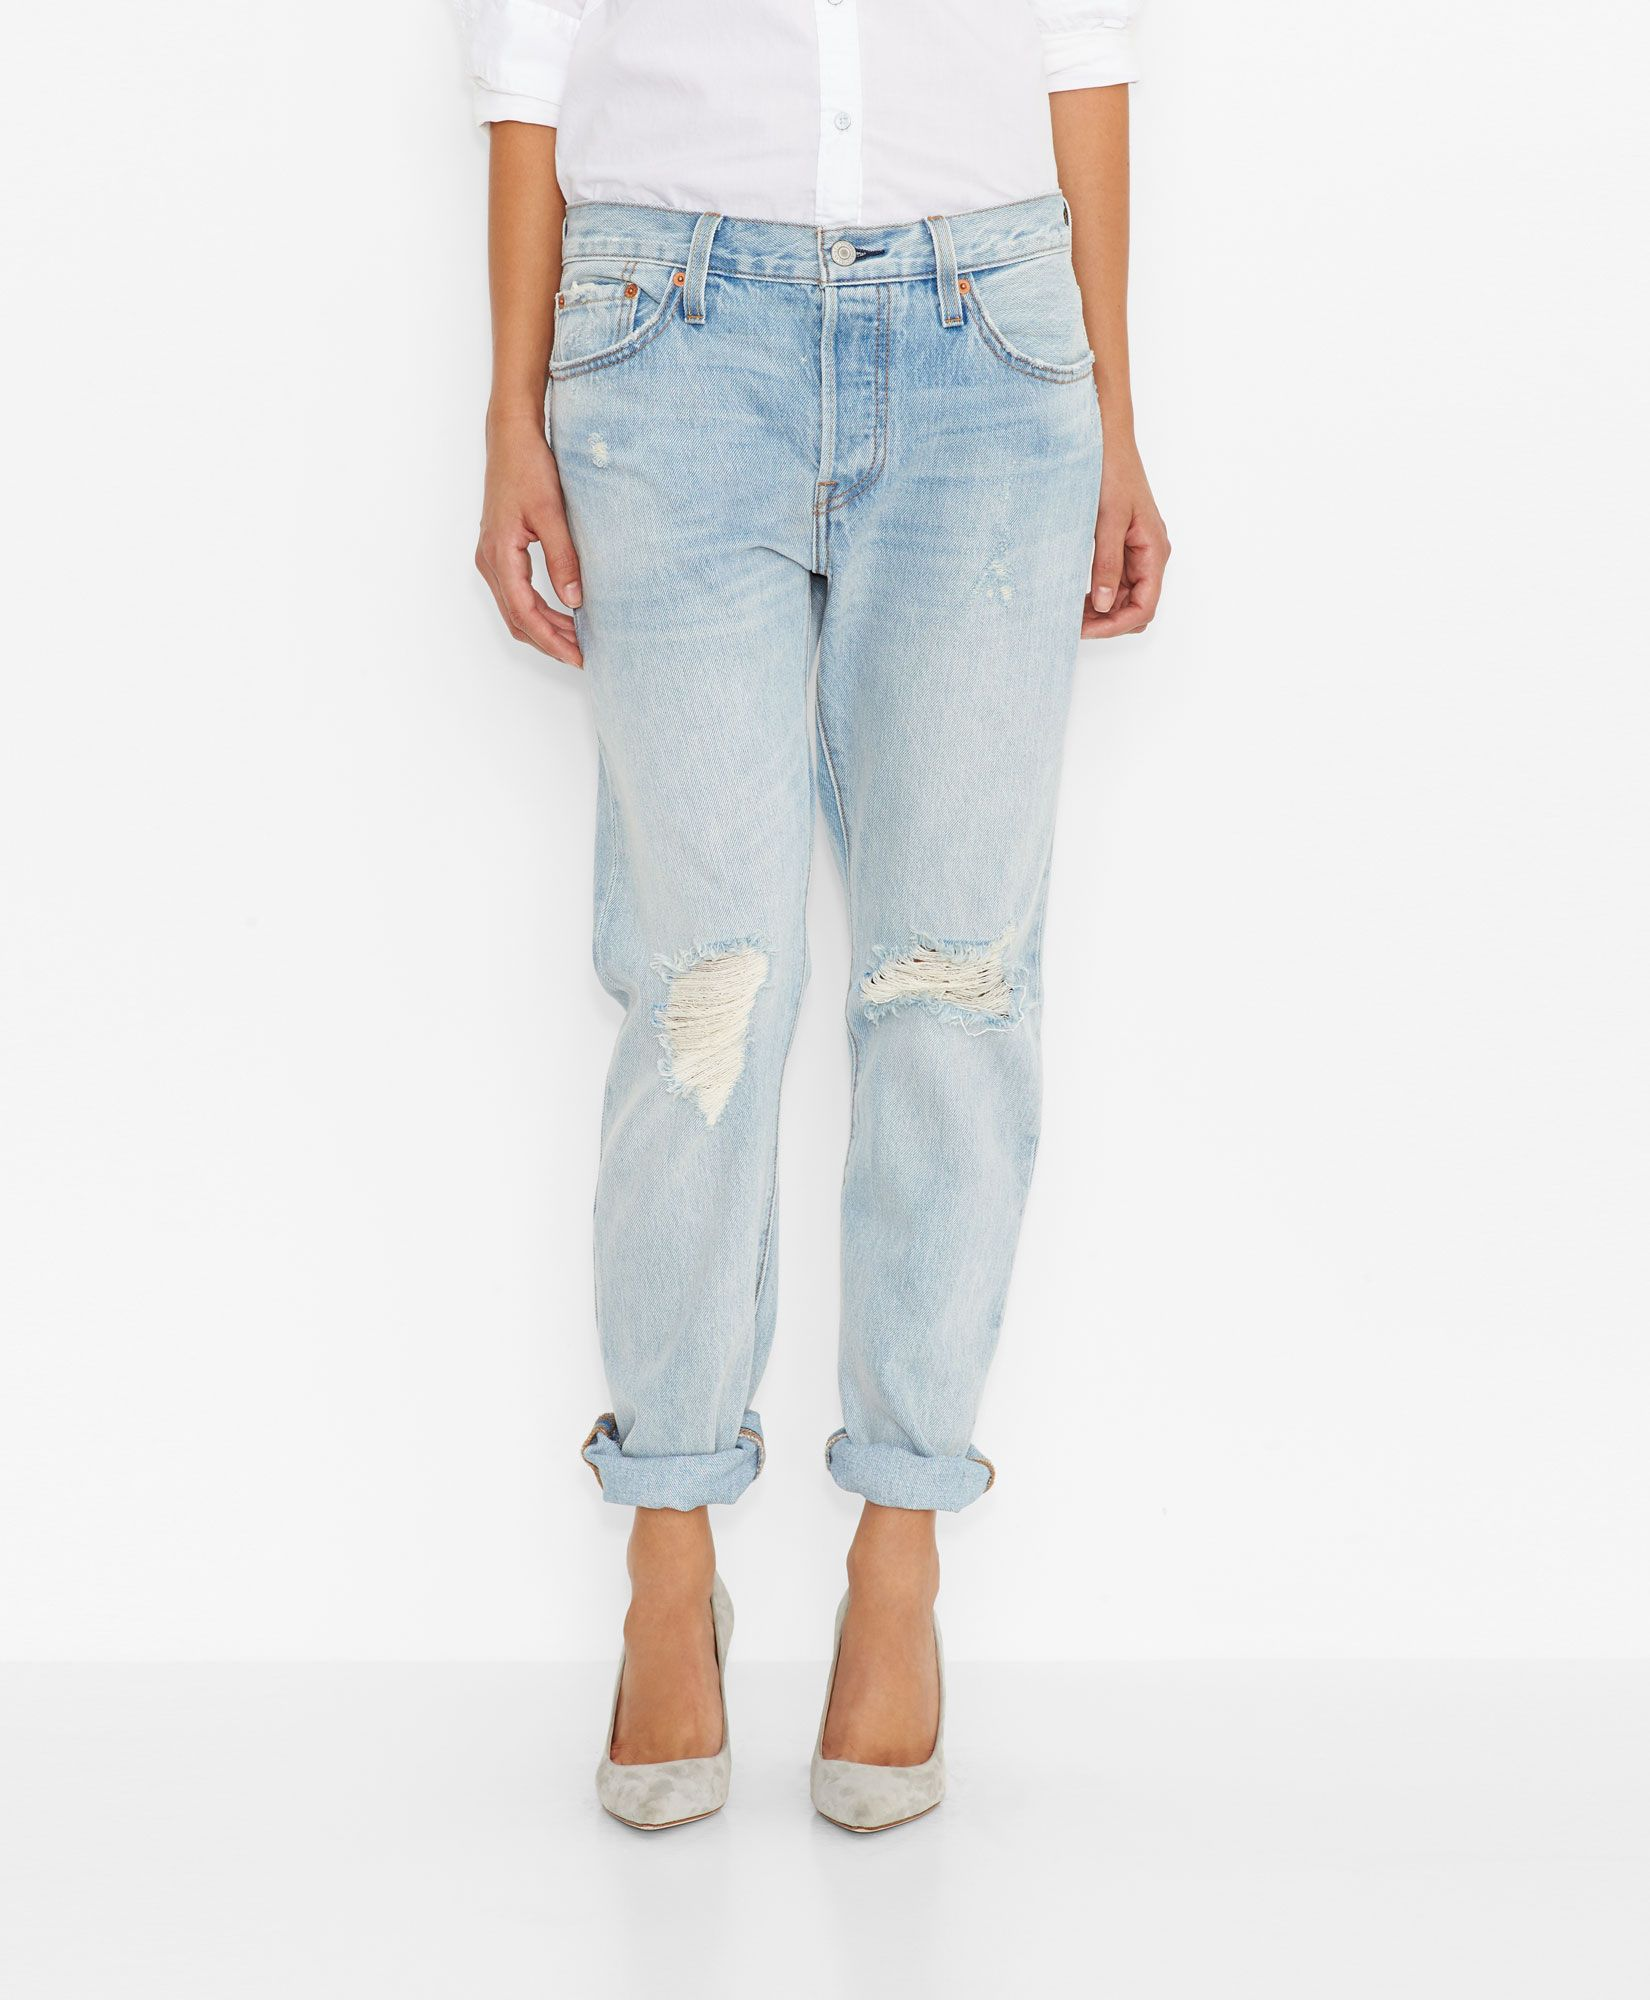 Levi's 501® CT Jeans for Women - Old Favorite - Boyfriend | Tomboy ...